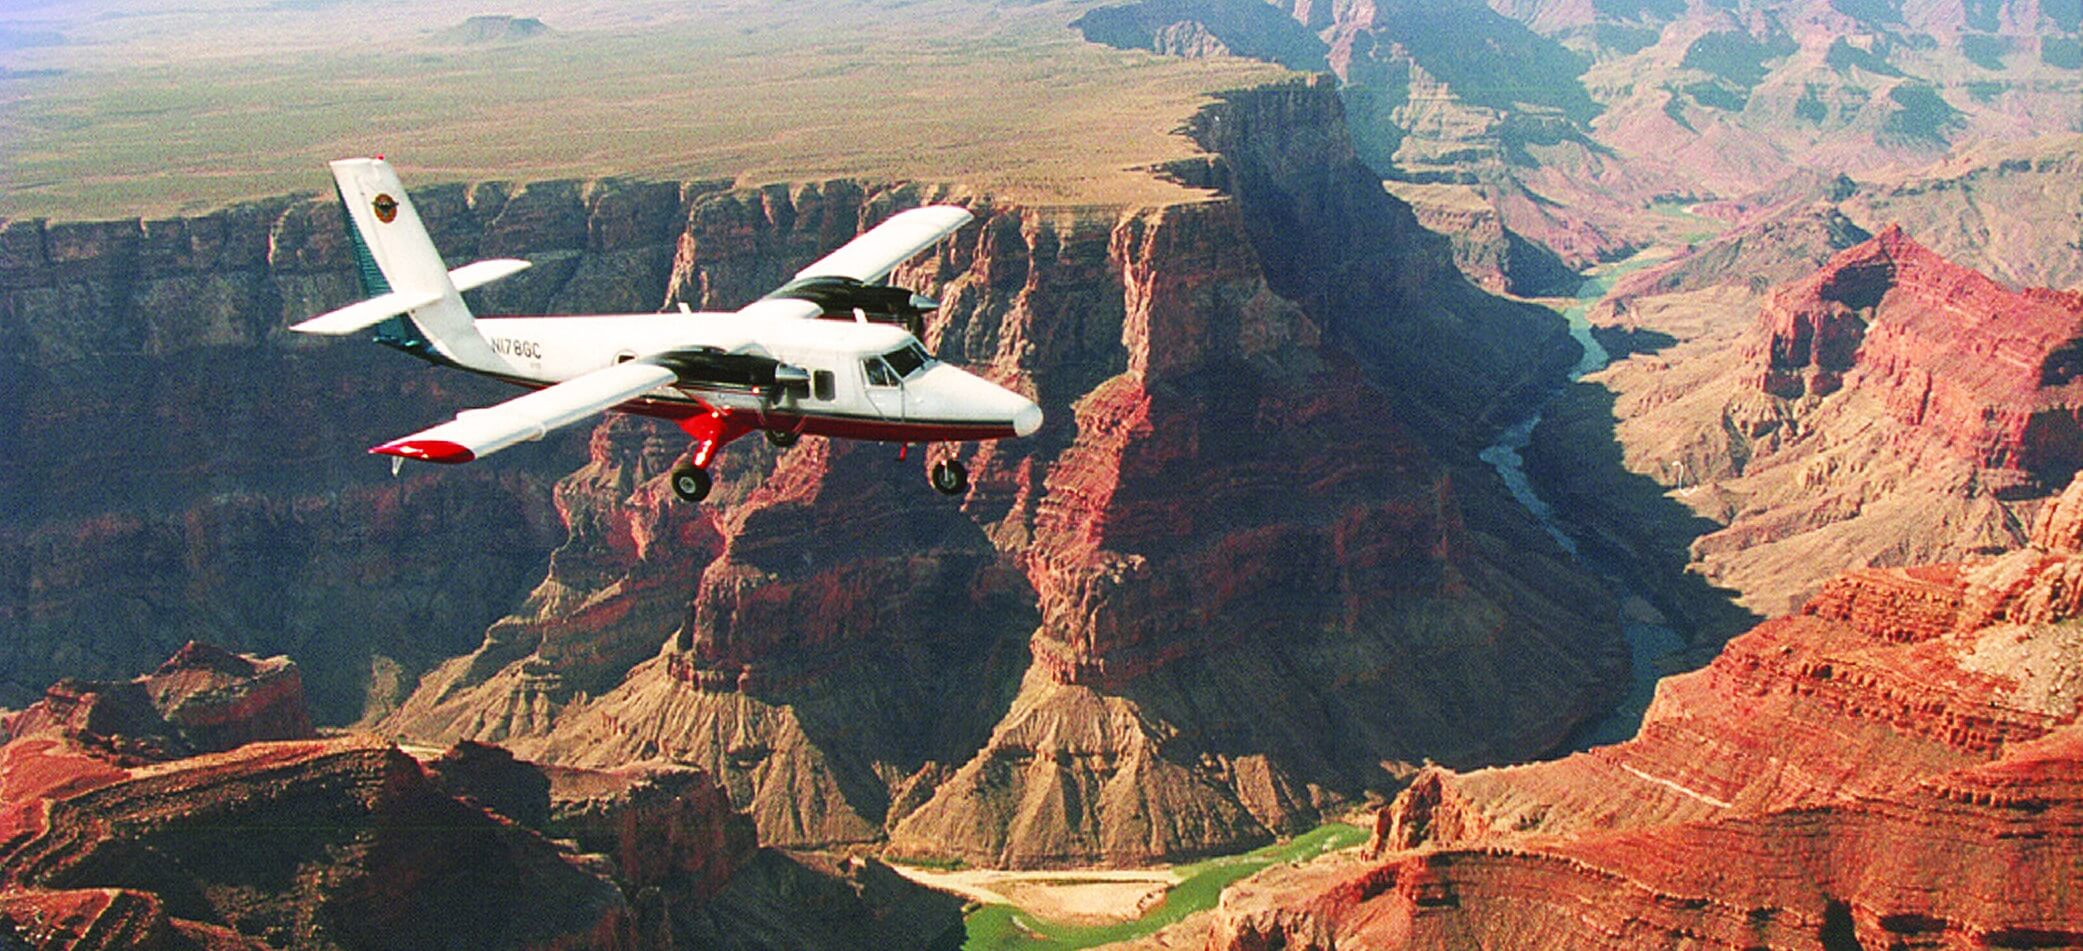 #10 Private Tour of Grand Canyon | Luxury Things To Do In Las Vegas | Image Source: grandcanyonairlines.com